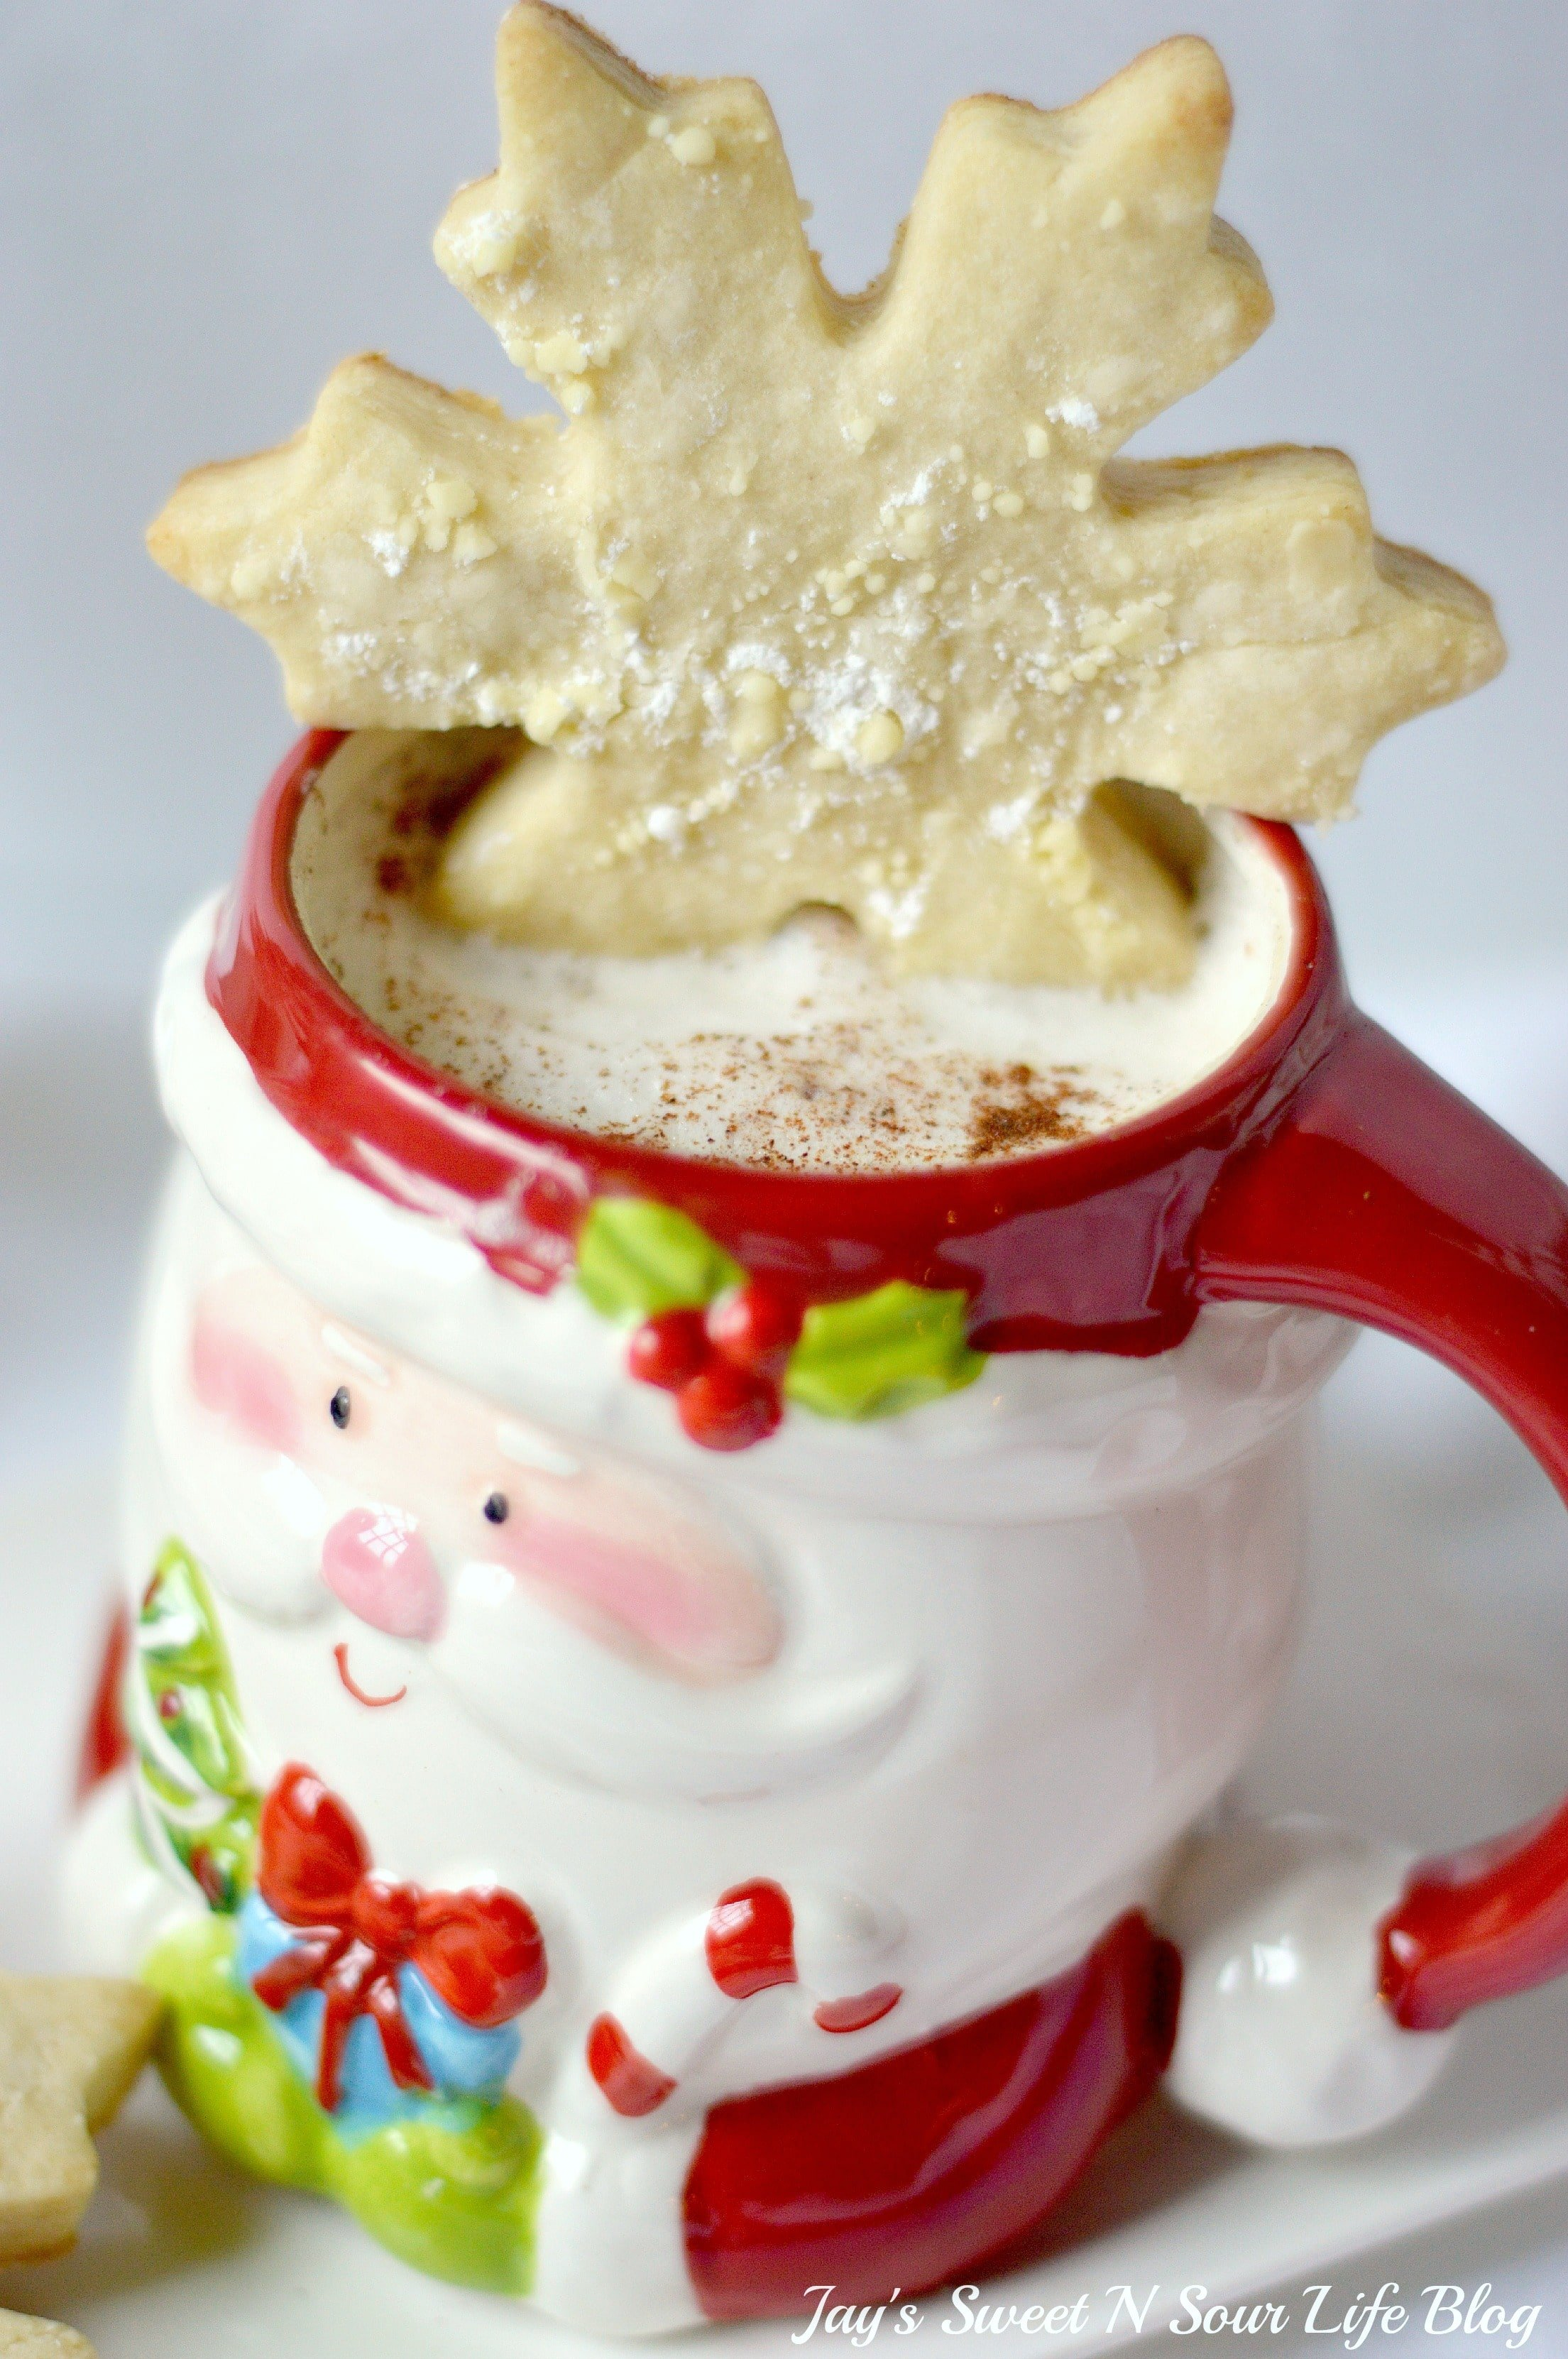 Santas milk and cookies latte Hero 3.3. Treat Santa to his very own Santa's Milk and Cookies Latte, paired with a buttery snowflake cookie perfect for dipping. No milk frother needed, this delicious sugar cookie flavored latte and snowflake cookies make the perfect holiday treat duo.